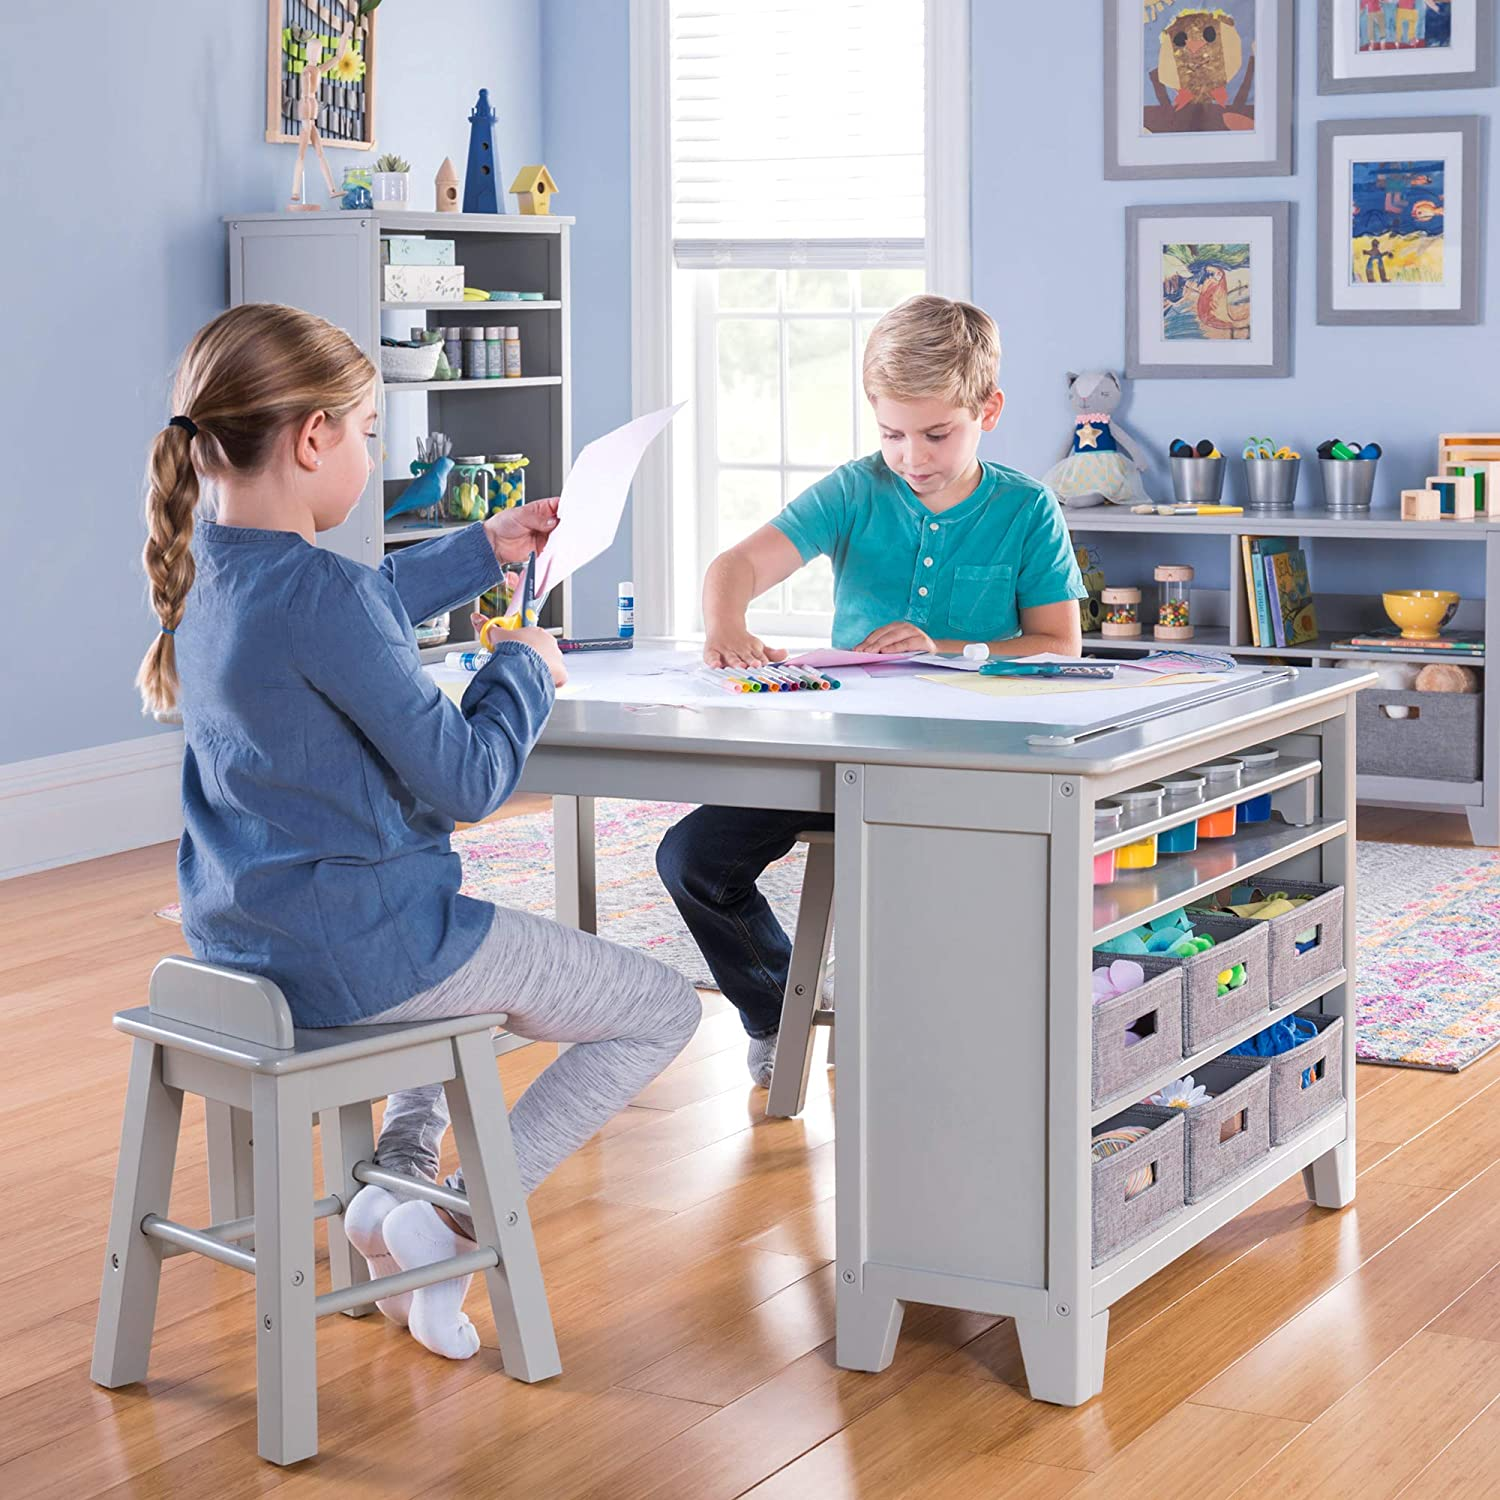 MARTHA STEWART Living and Learning Spasm price Kids' Stool Table Set Art Max 80% OFF